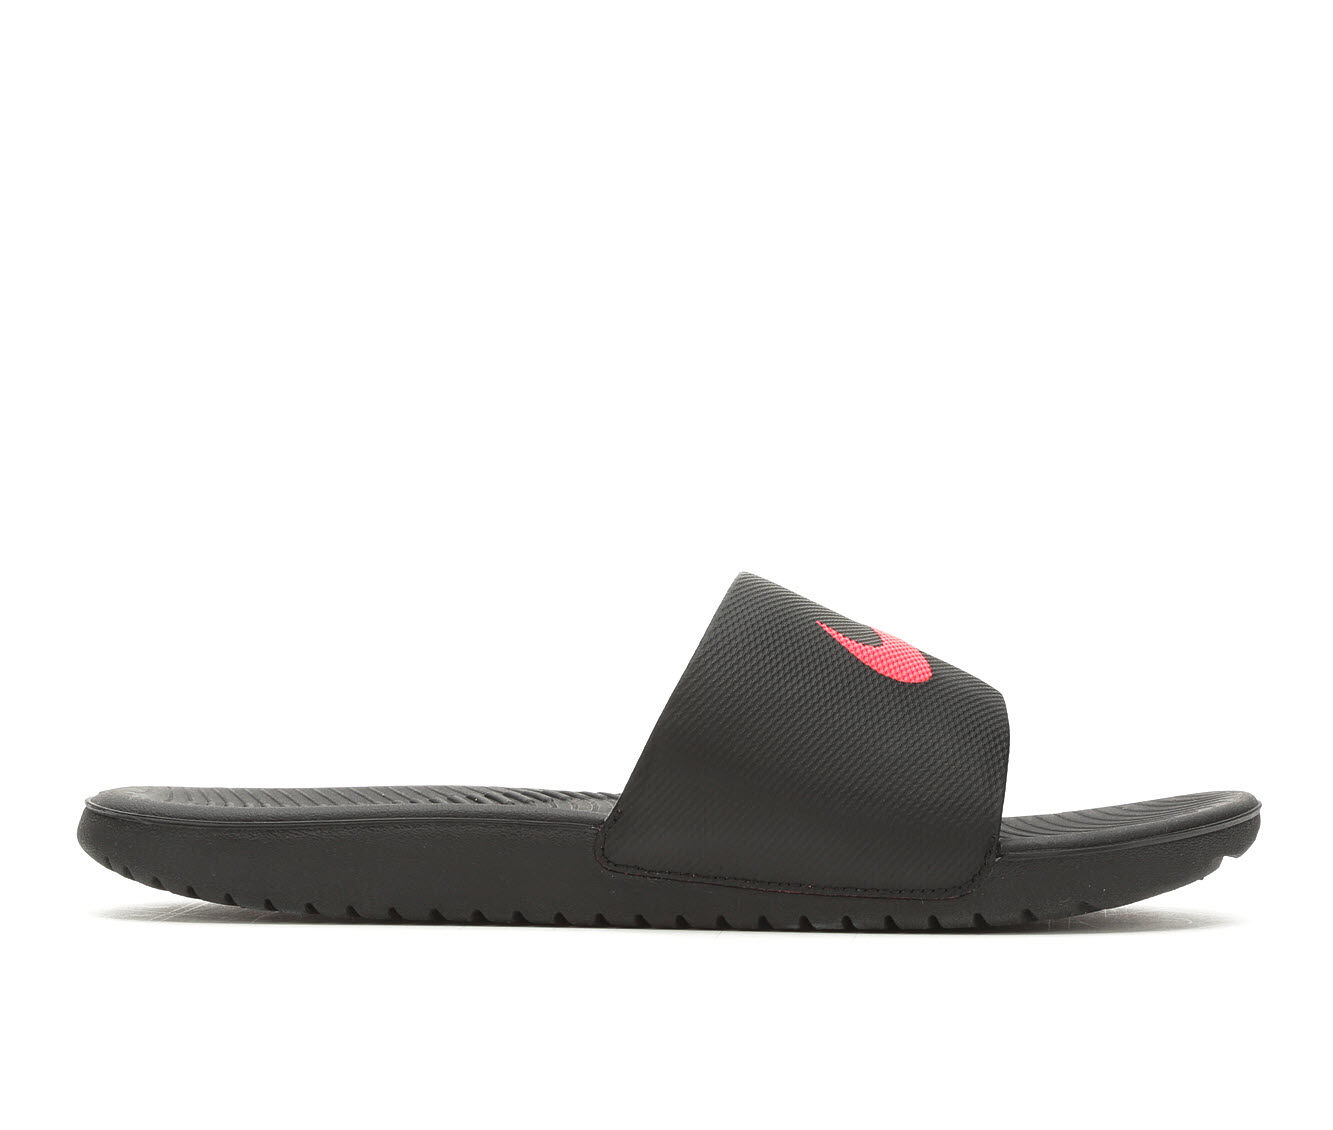 coupon Men's Nike Kawa Slide Sport Slides Black/Red.Orbit